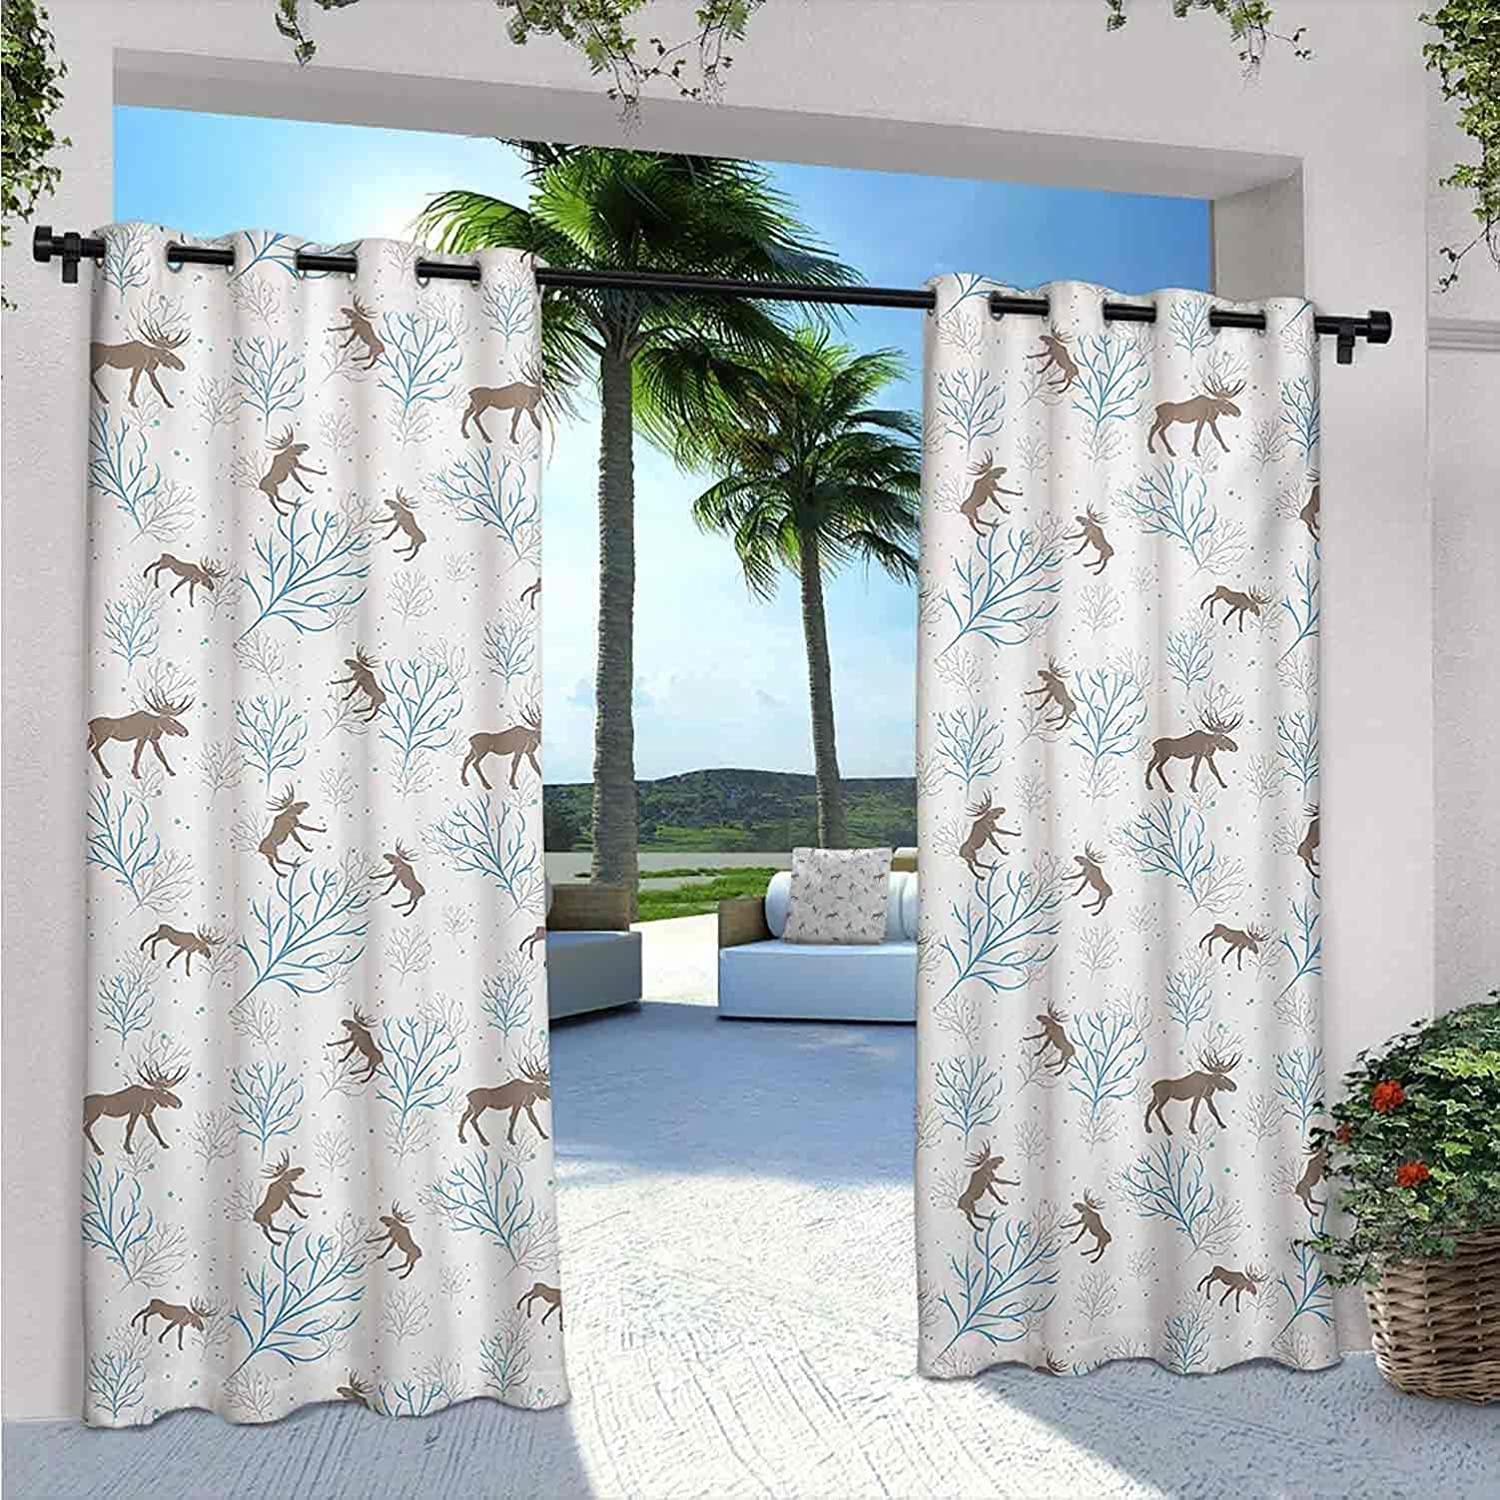 Max 52% OFF Moose Bargain Outdoor Curtains for Patio Forest Retro Winter Waterproof